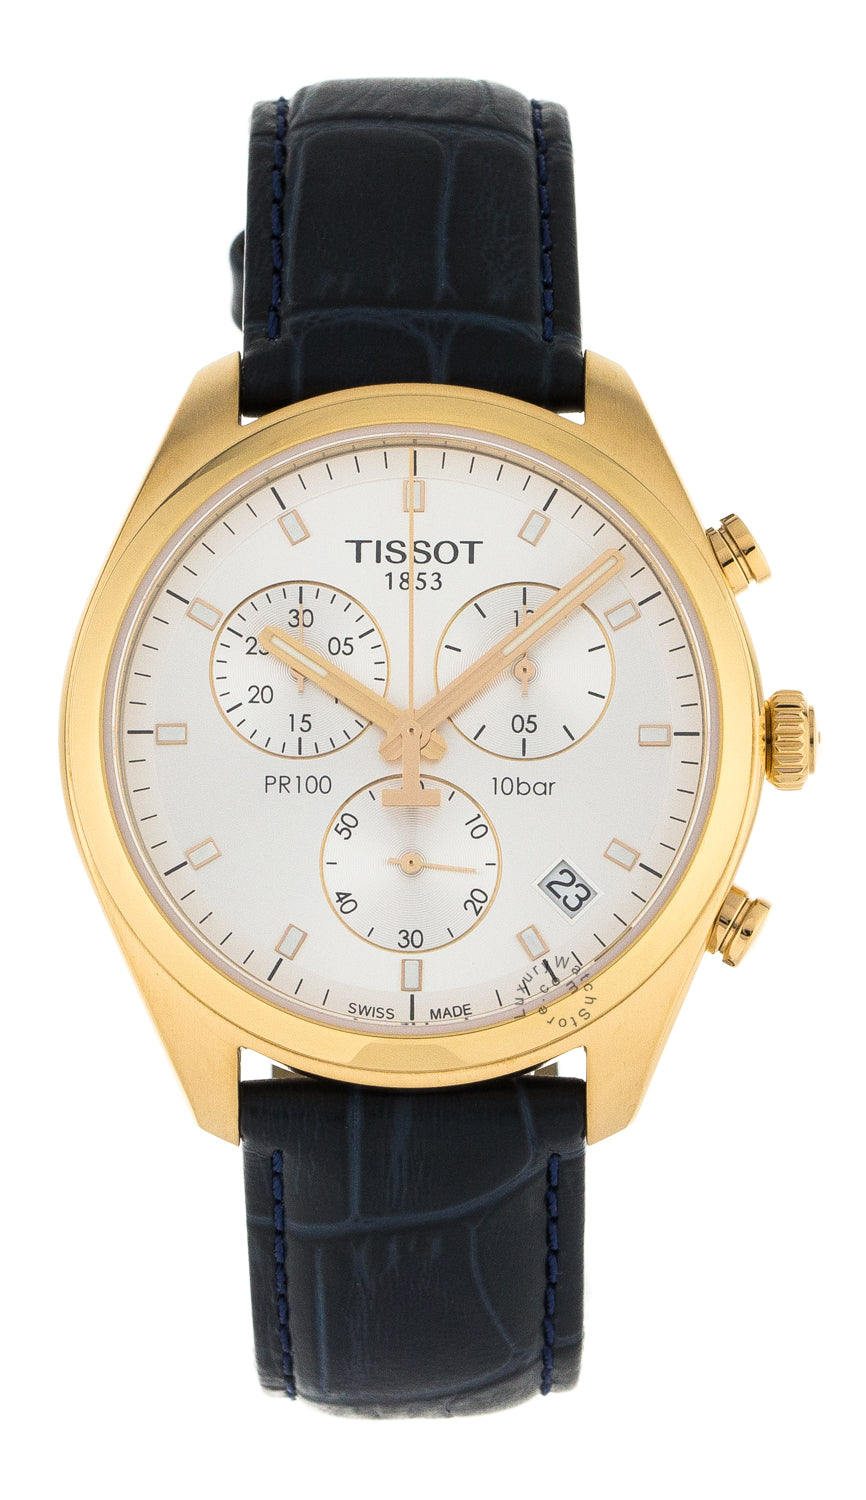 Tissot PR100 Chronograph Silver Dial Blue Leather Watch T1014173603100